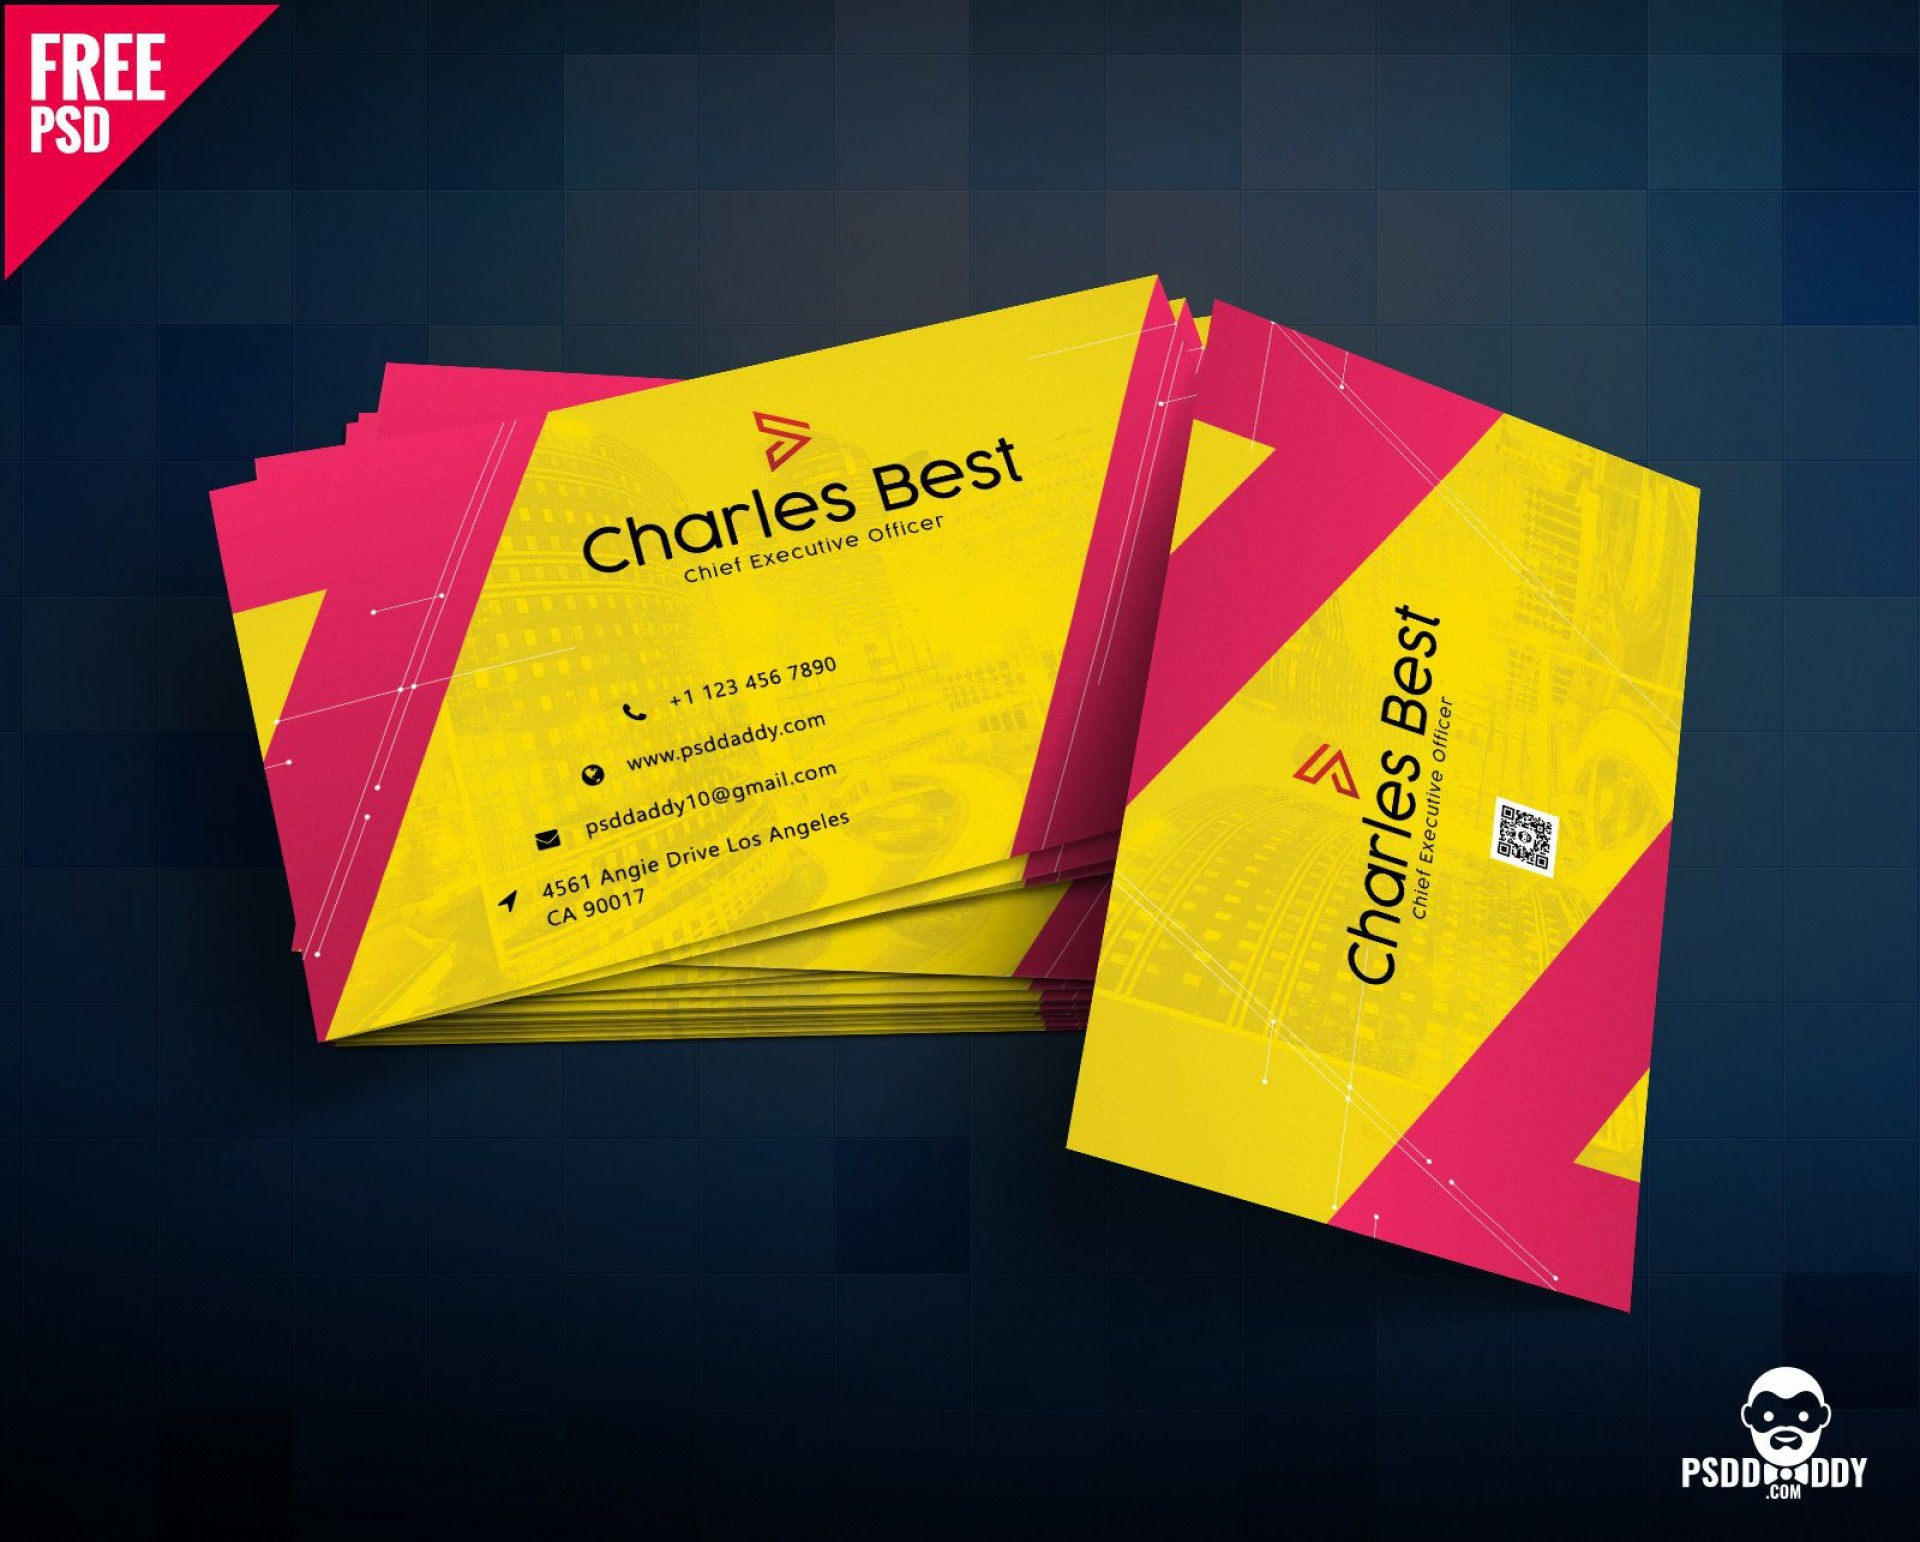 003 Beautiful Free Photoshop Busines Card Template Download Concept  Adobe Psd Visiting Design1920